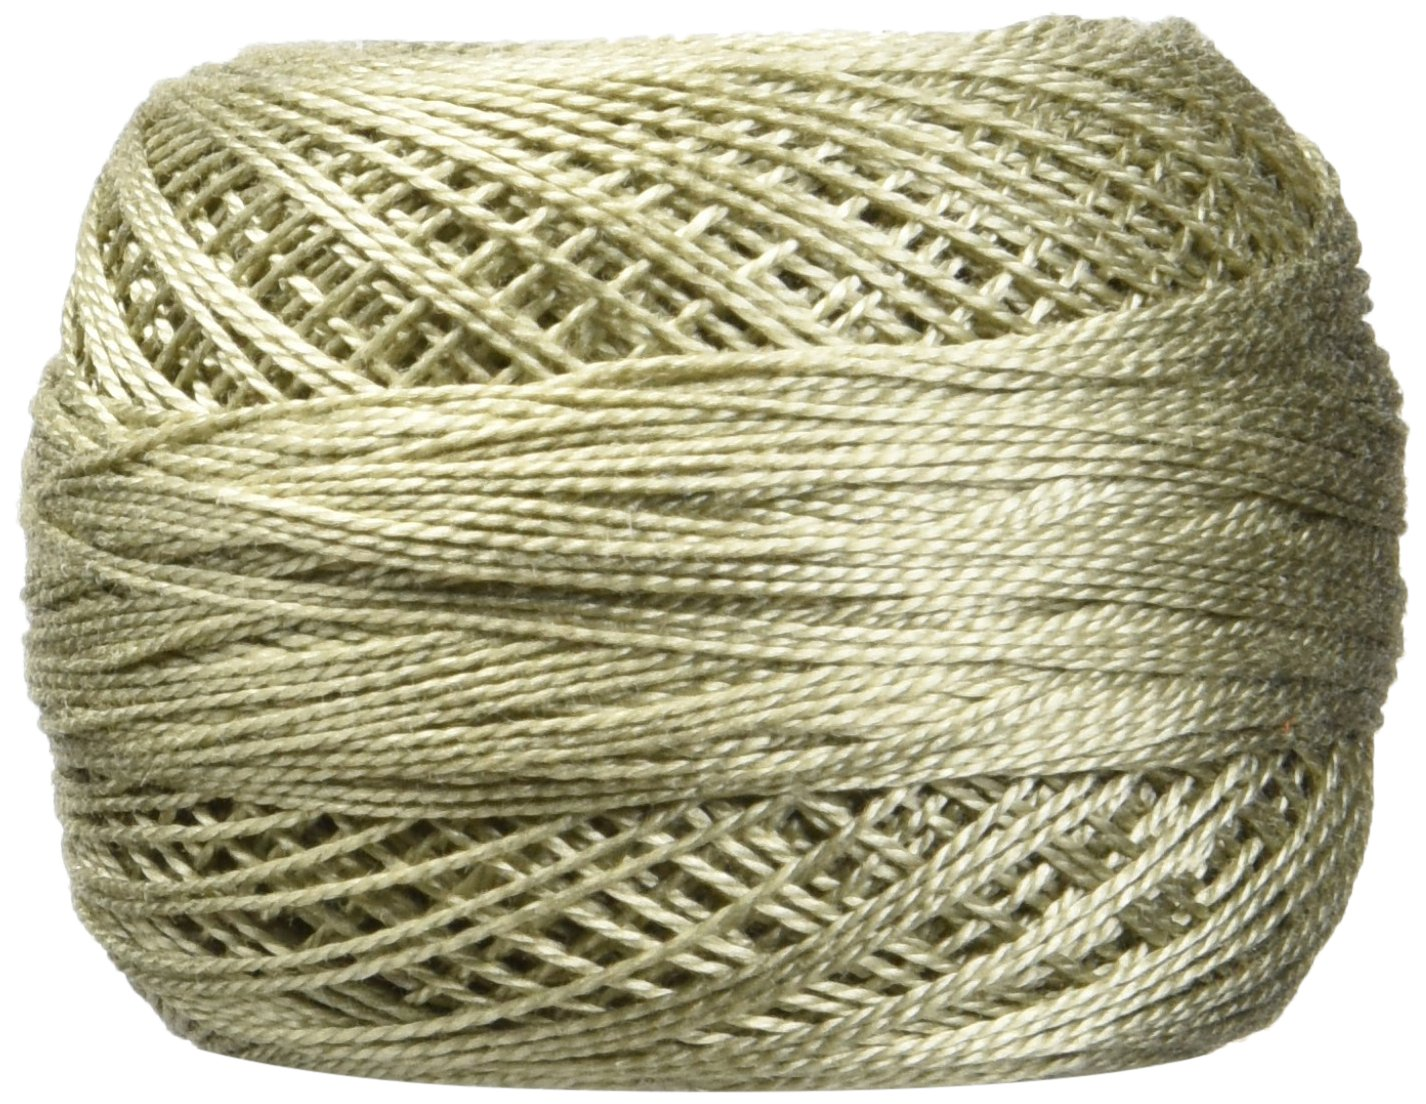 DMC 116 12-B5200 Pearl Cotton Thread Balls, Snow White, Size 12 Notions - In Network